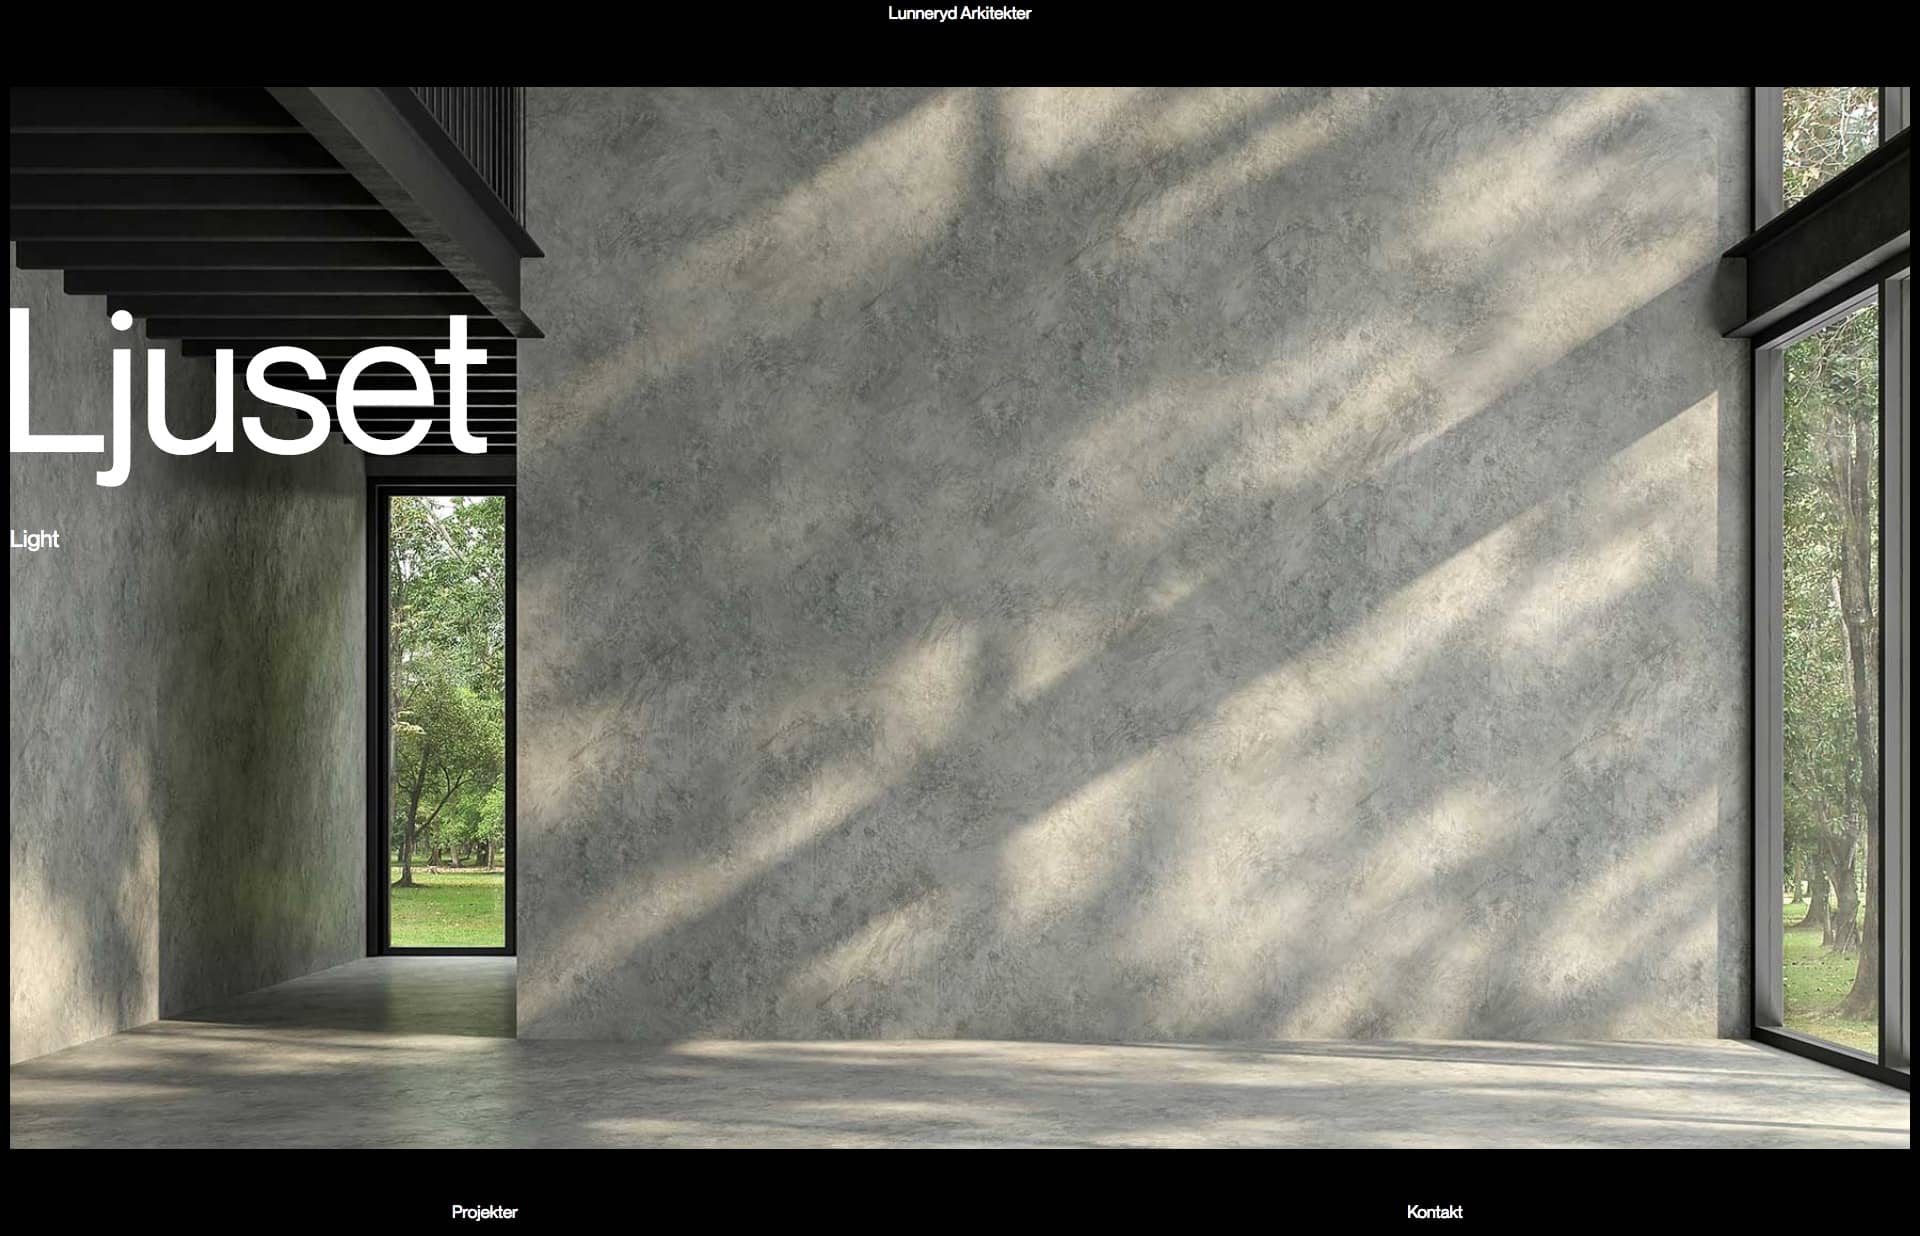 Screenshot of the website Lunneryd Arkitekter, featured on The Gallery, a curated collection of minimal websites